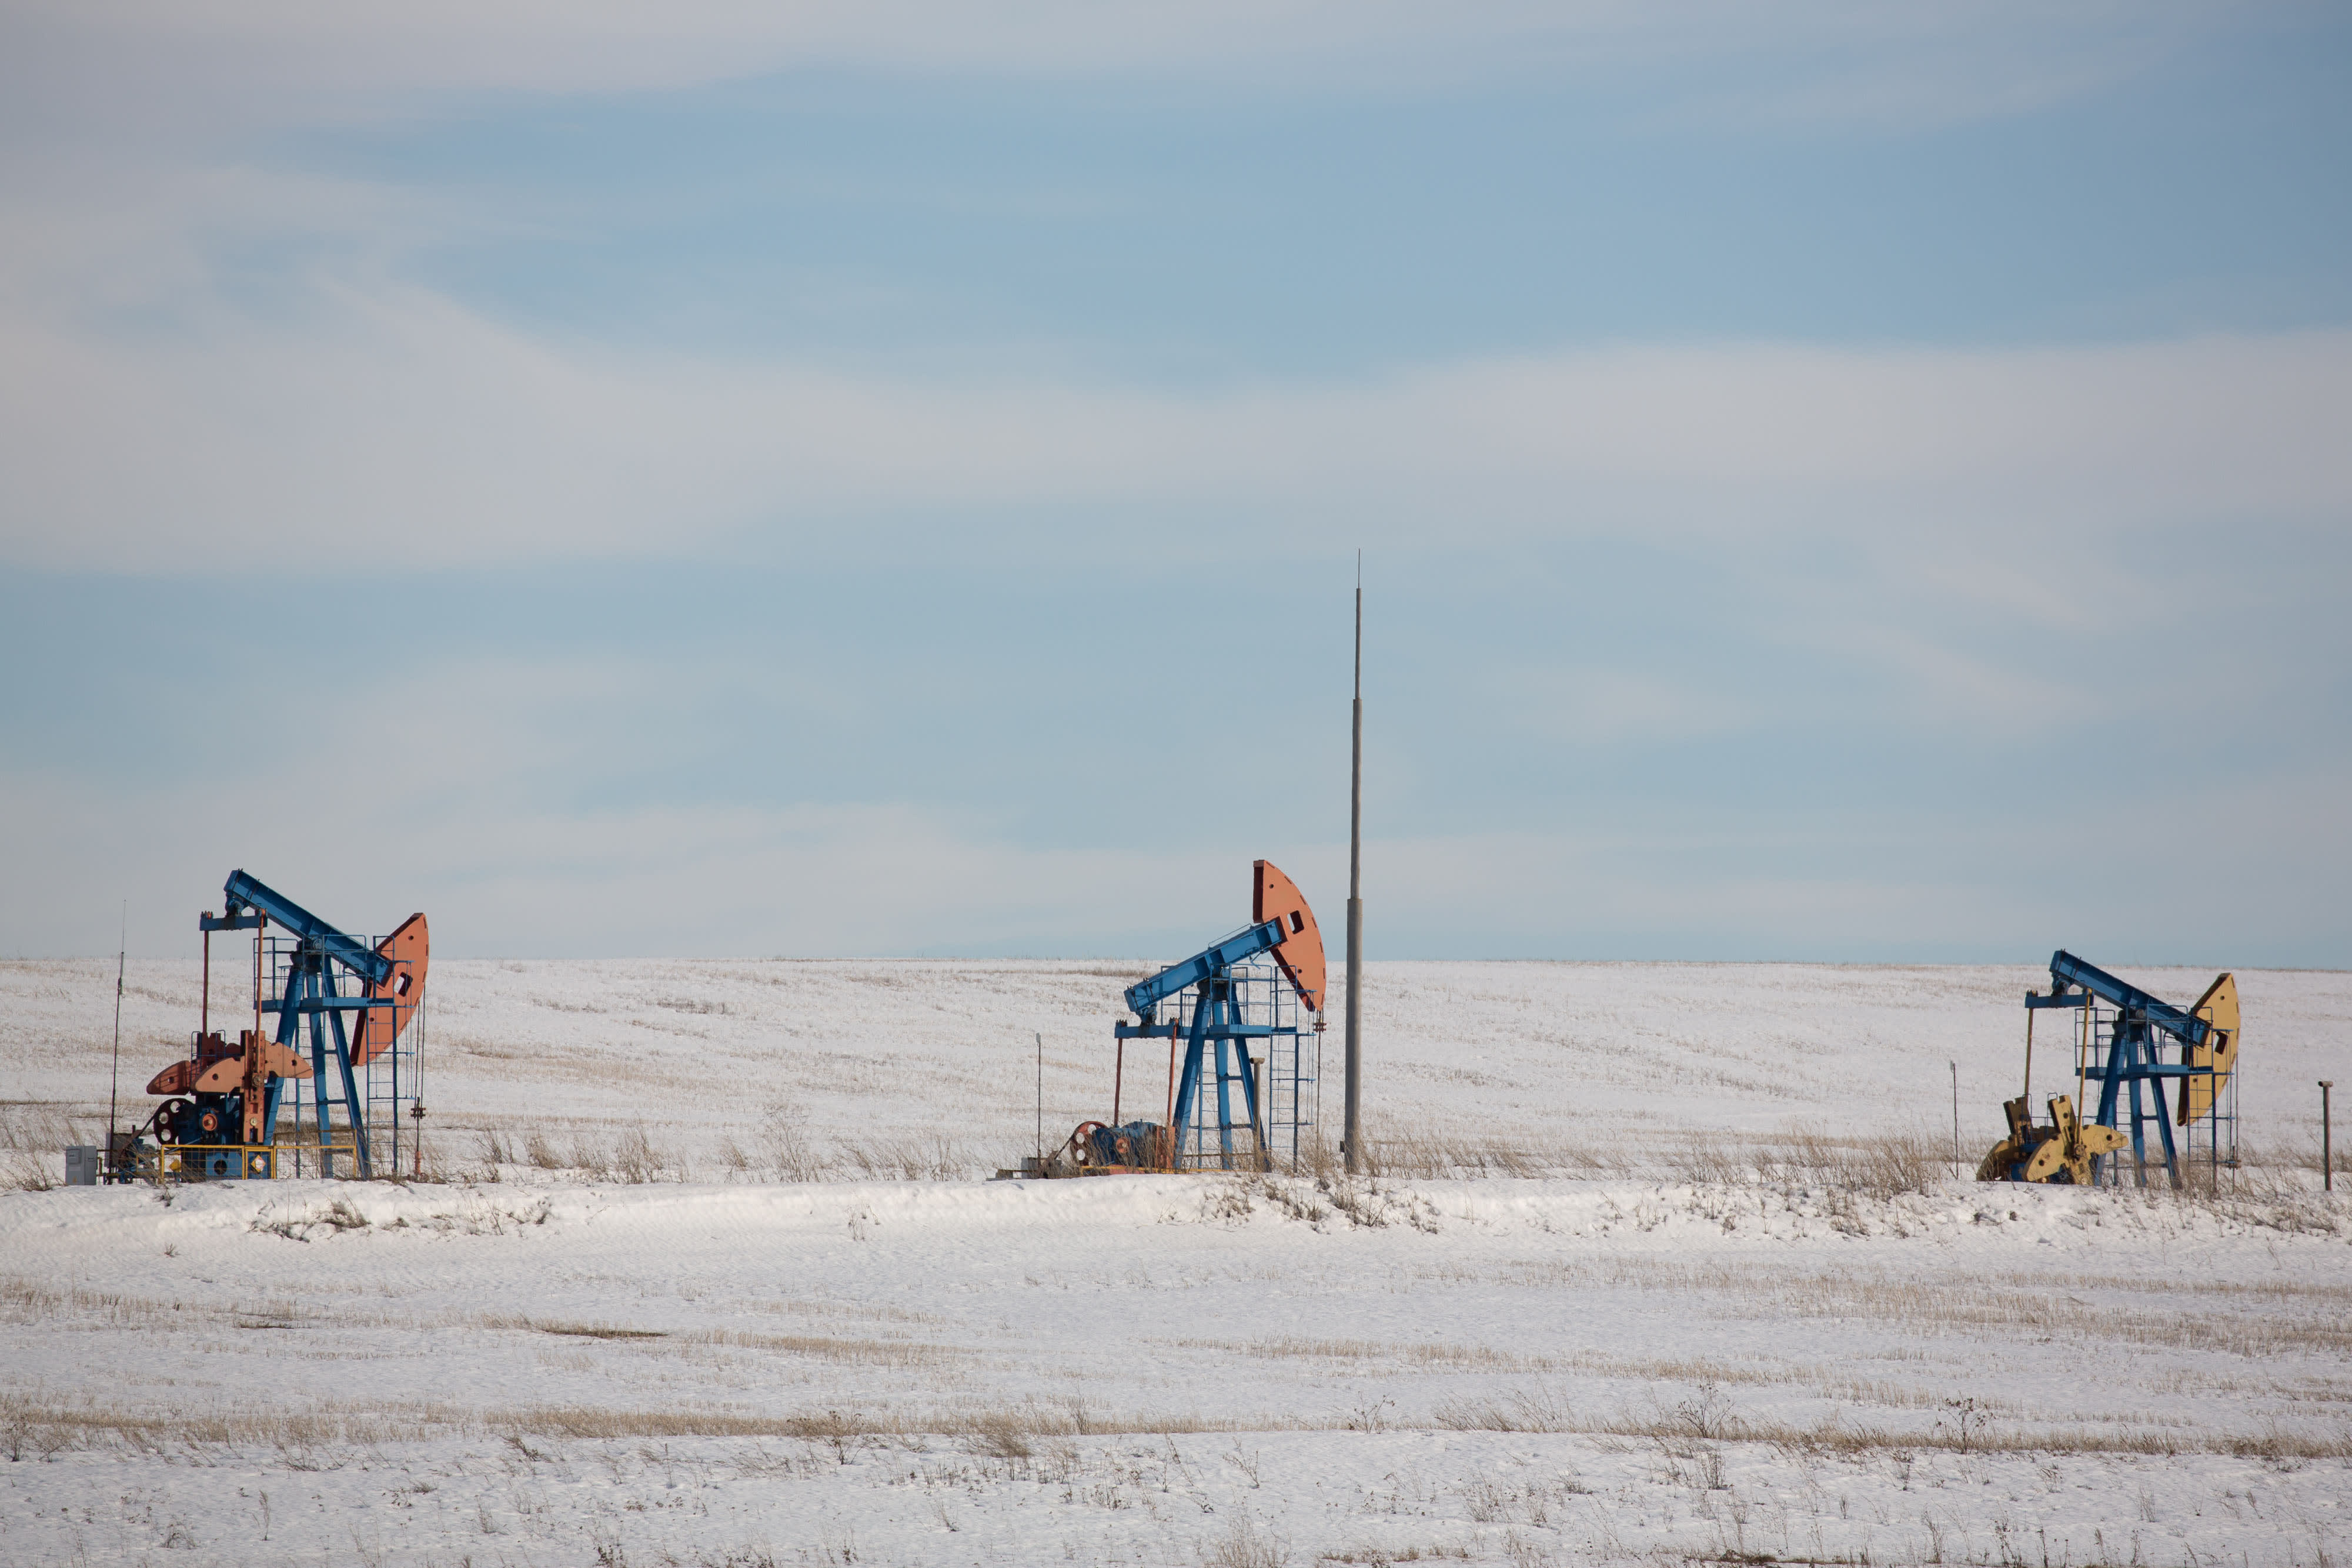 Oil prices slides as U.S. crude stockpile growth heightens oversupply fears